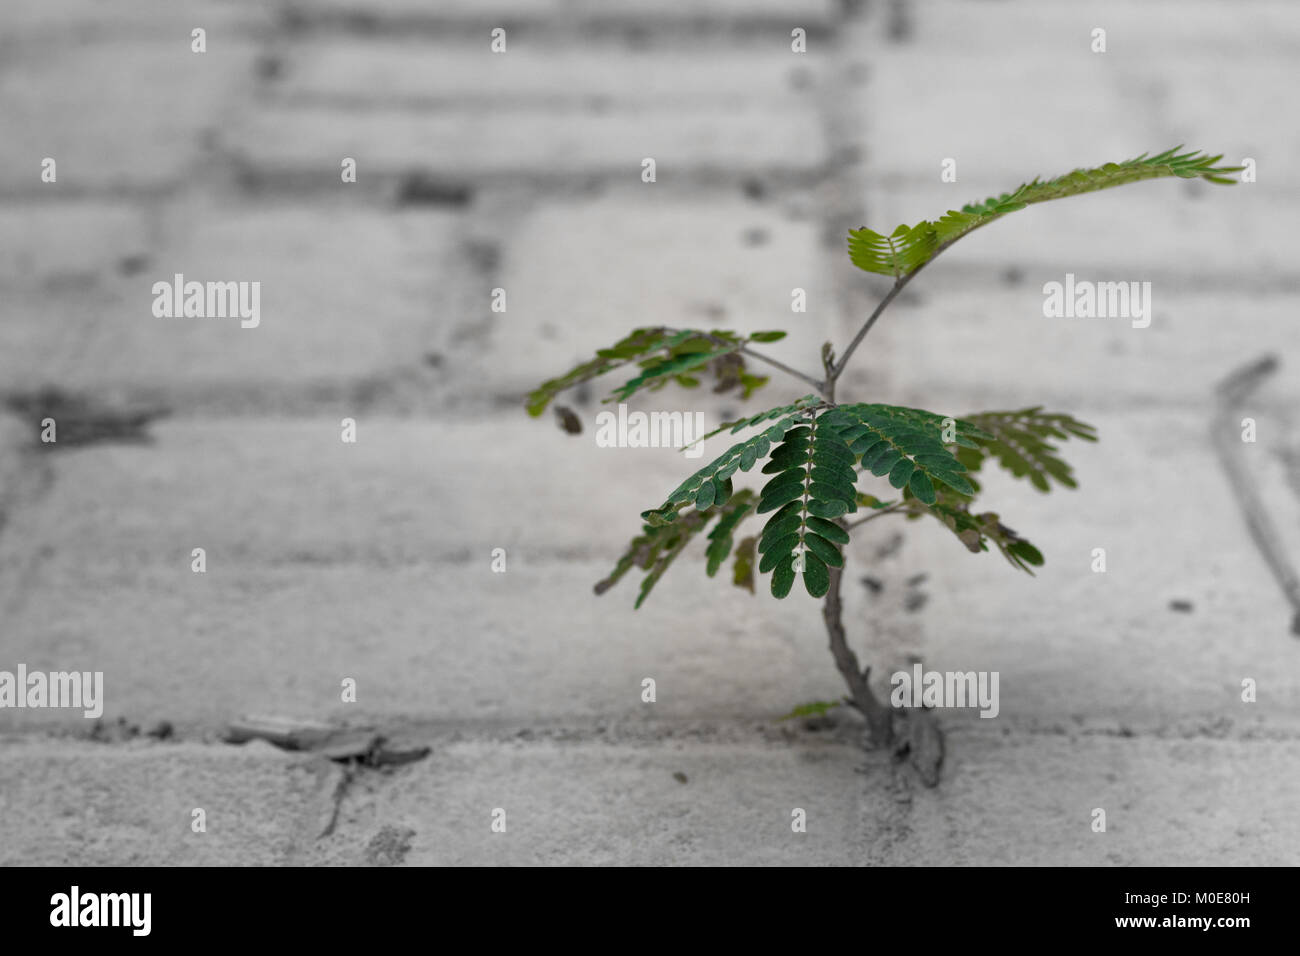 A new tree shoots out from in between concrete bricks on the floor. A display of hardiness and resilience. - Stock Image